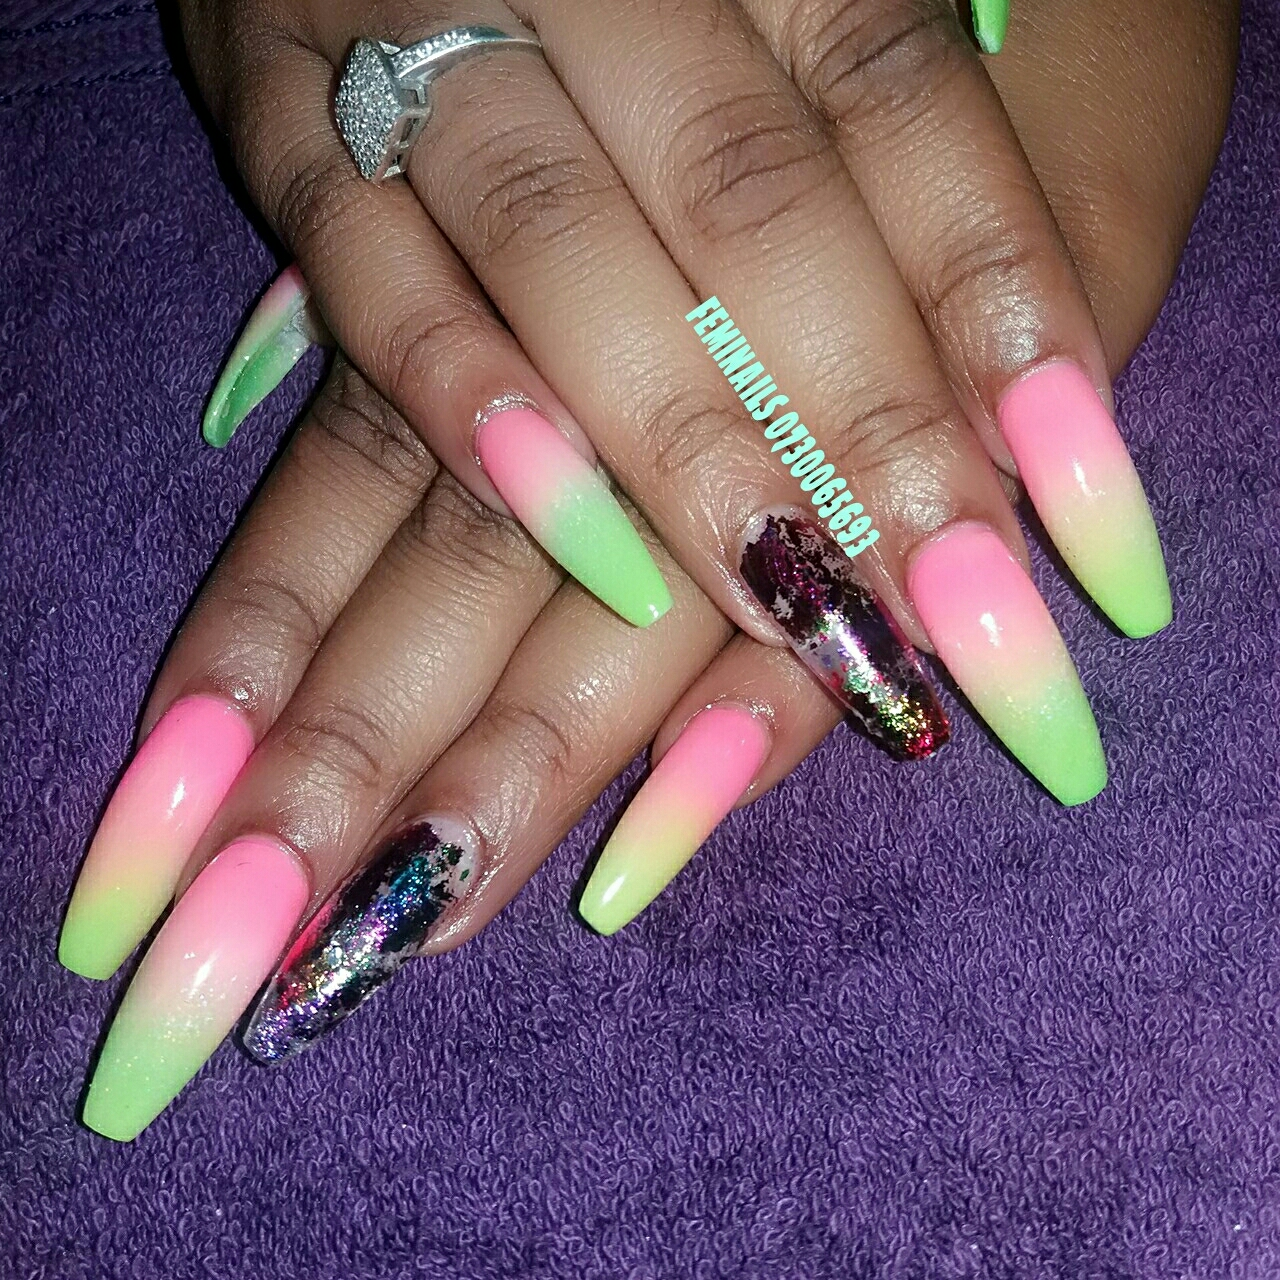 Acrylic and gel nails